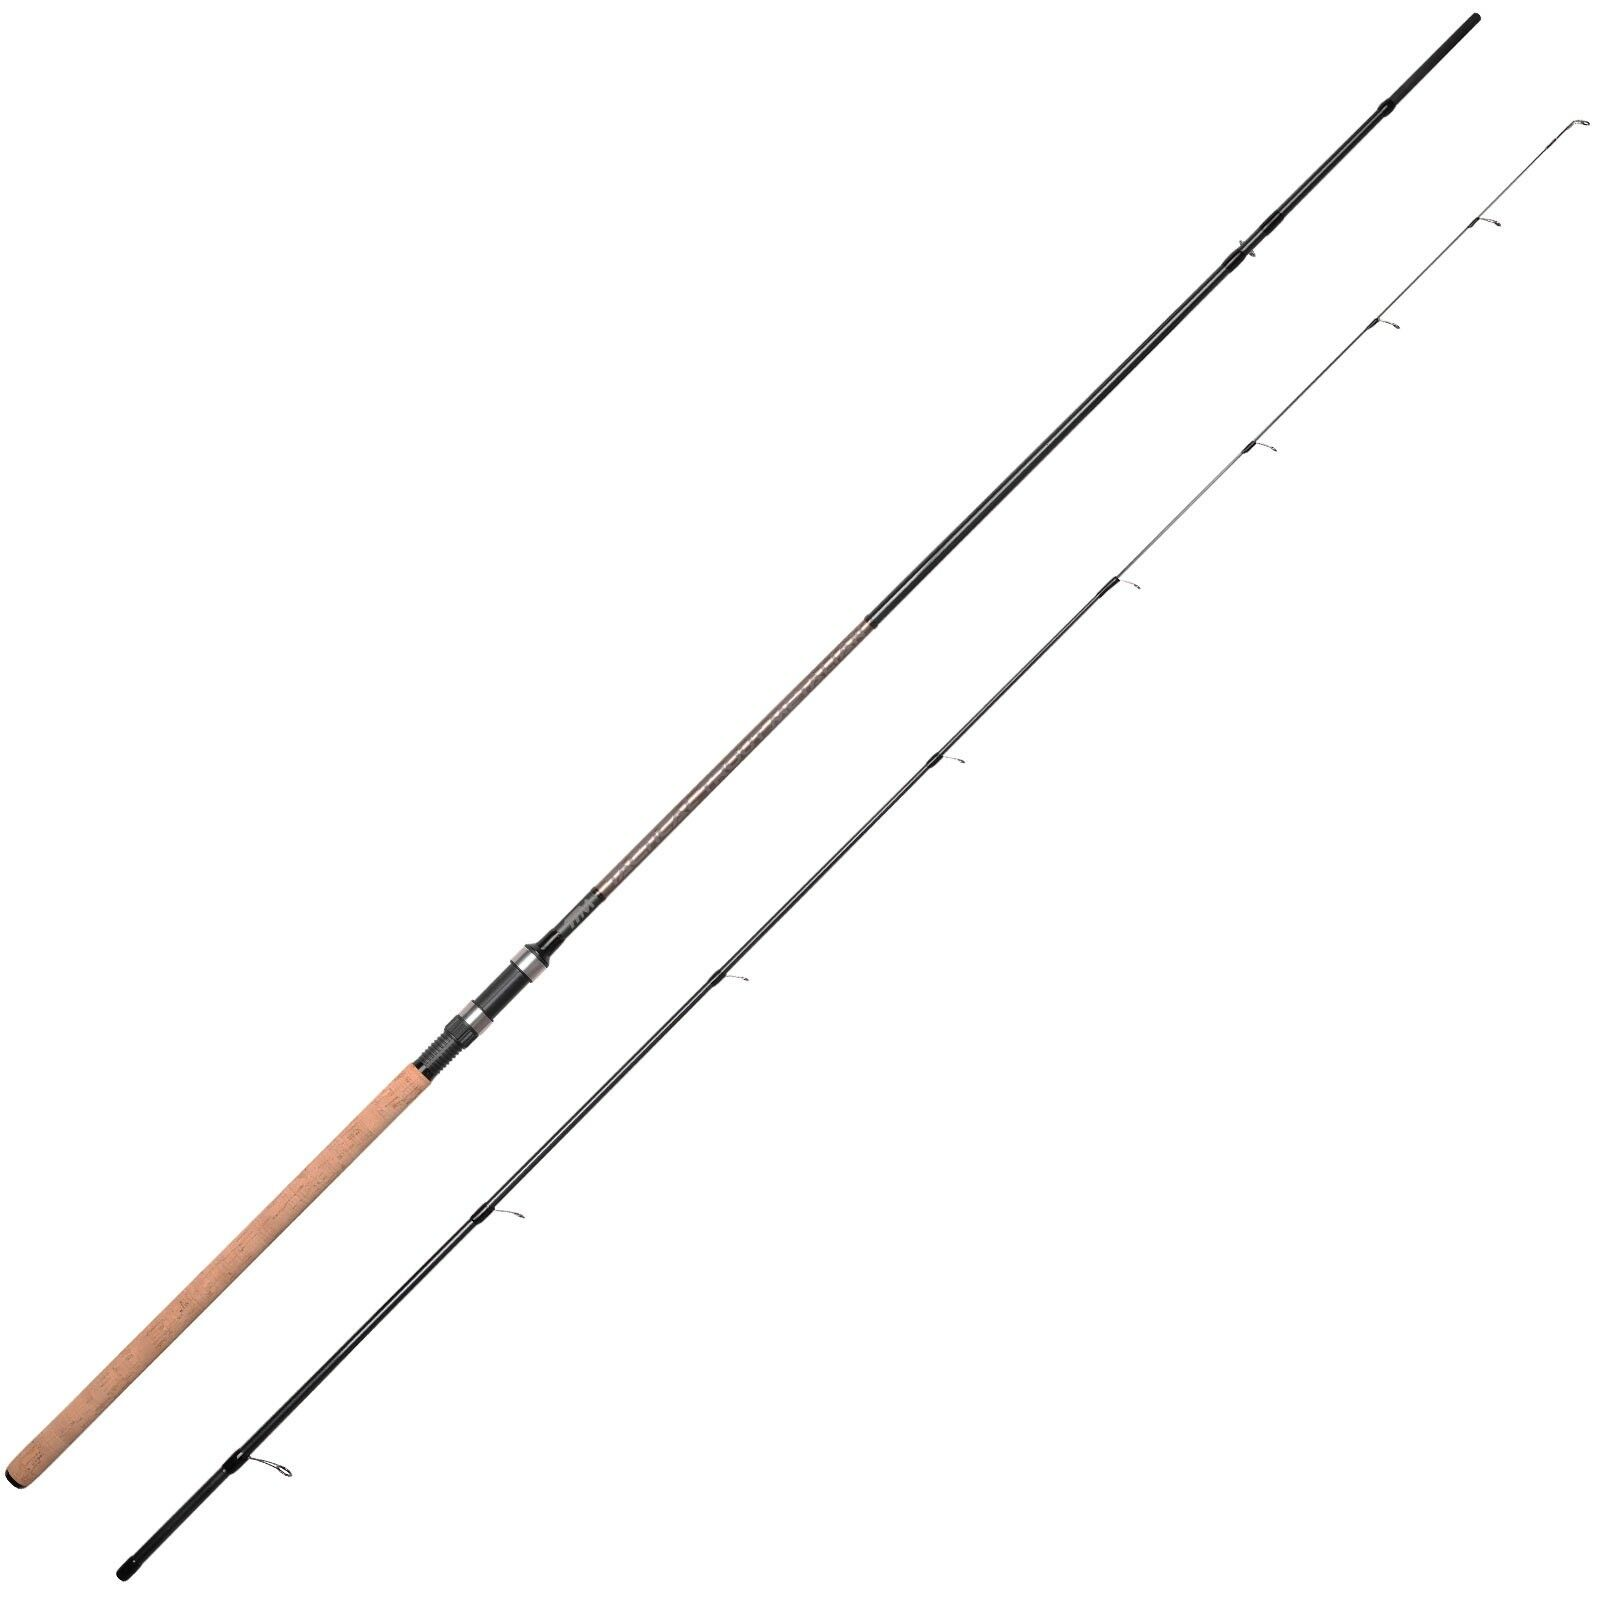 SPRO Trout Rods-Trout Master Tactical Trout metalian 2,75m 5-40g 2 Parts